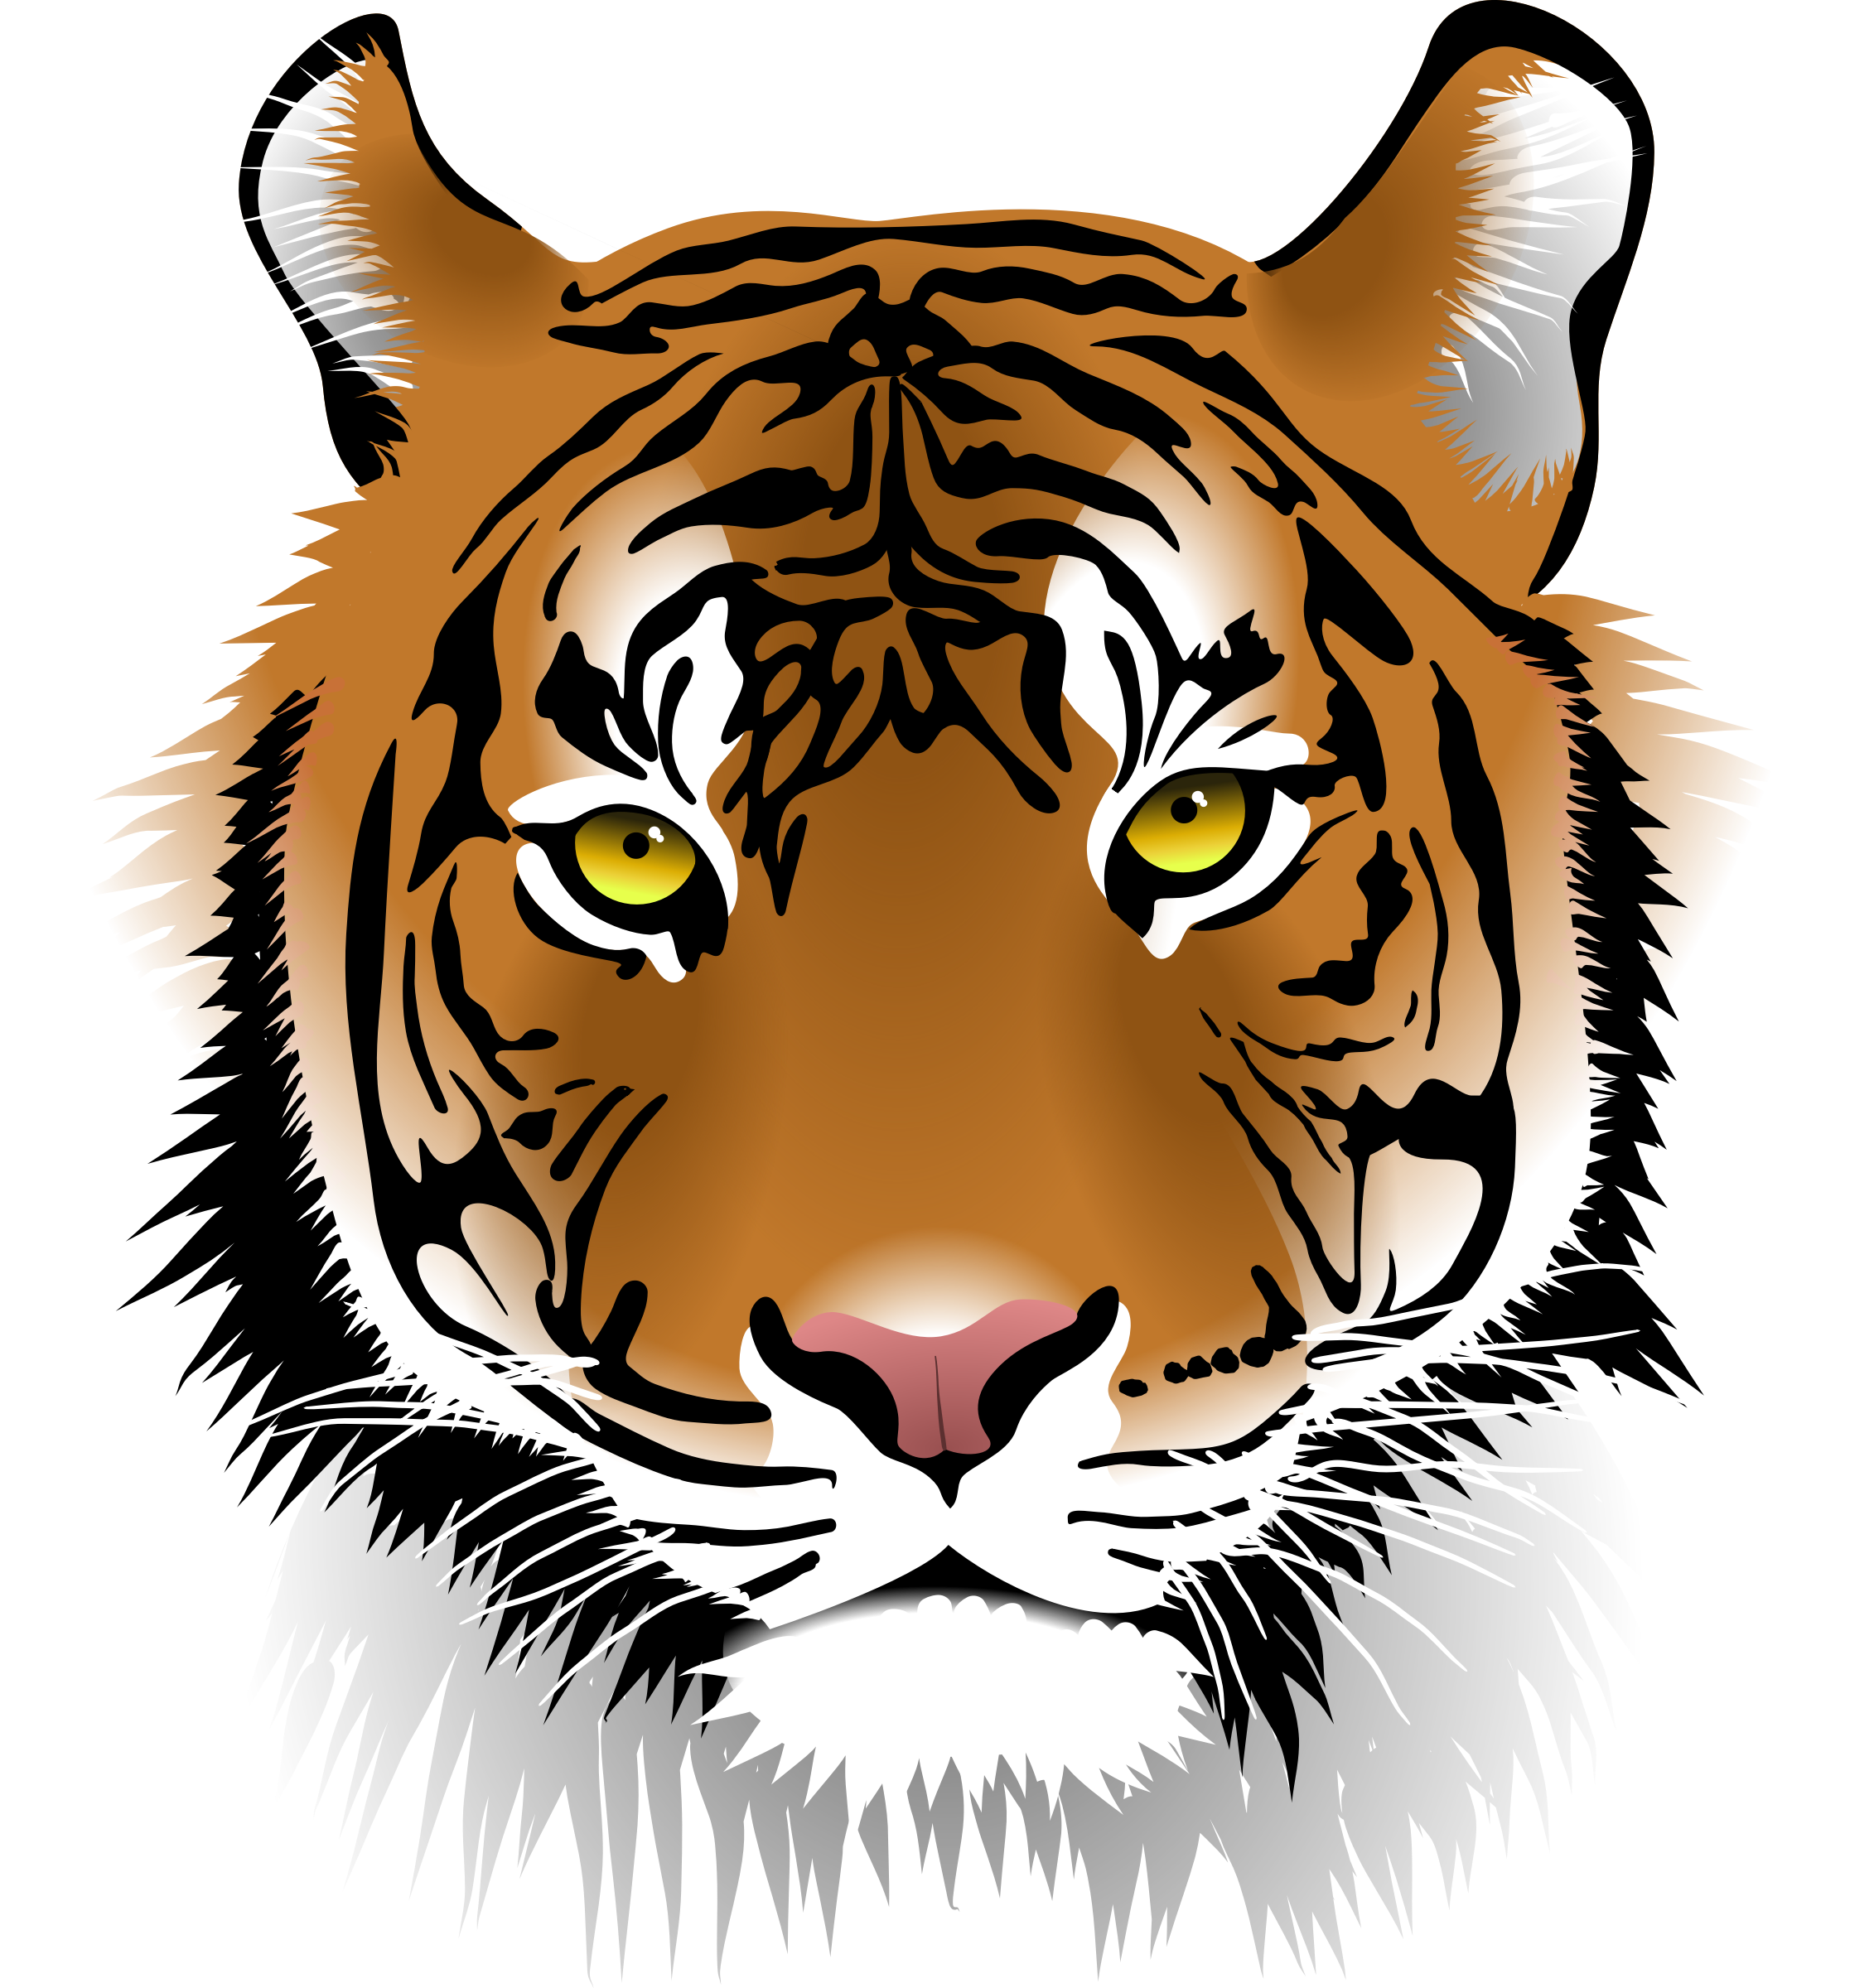 Tiger png clipart jpg black and white stock Tiger Png Face & Free Tiger Face.png Transparent Images ... jpg black and white stock